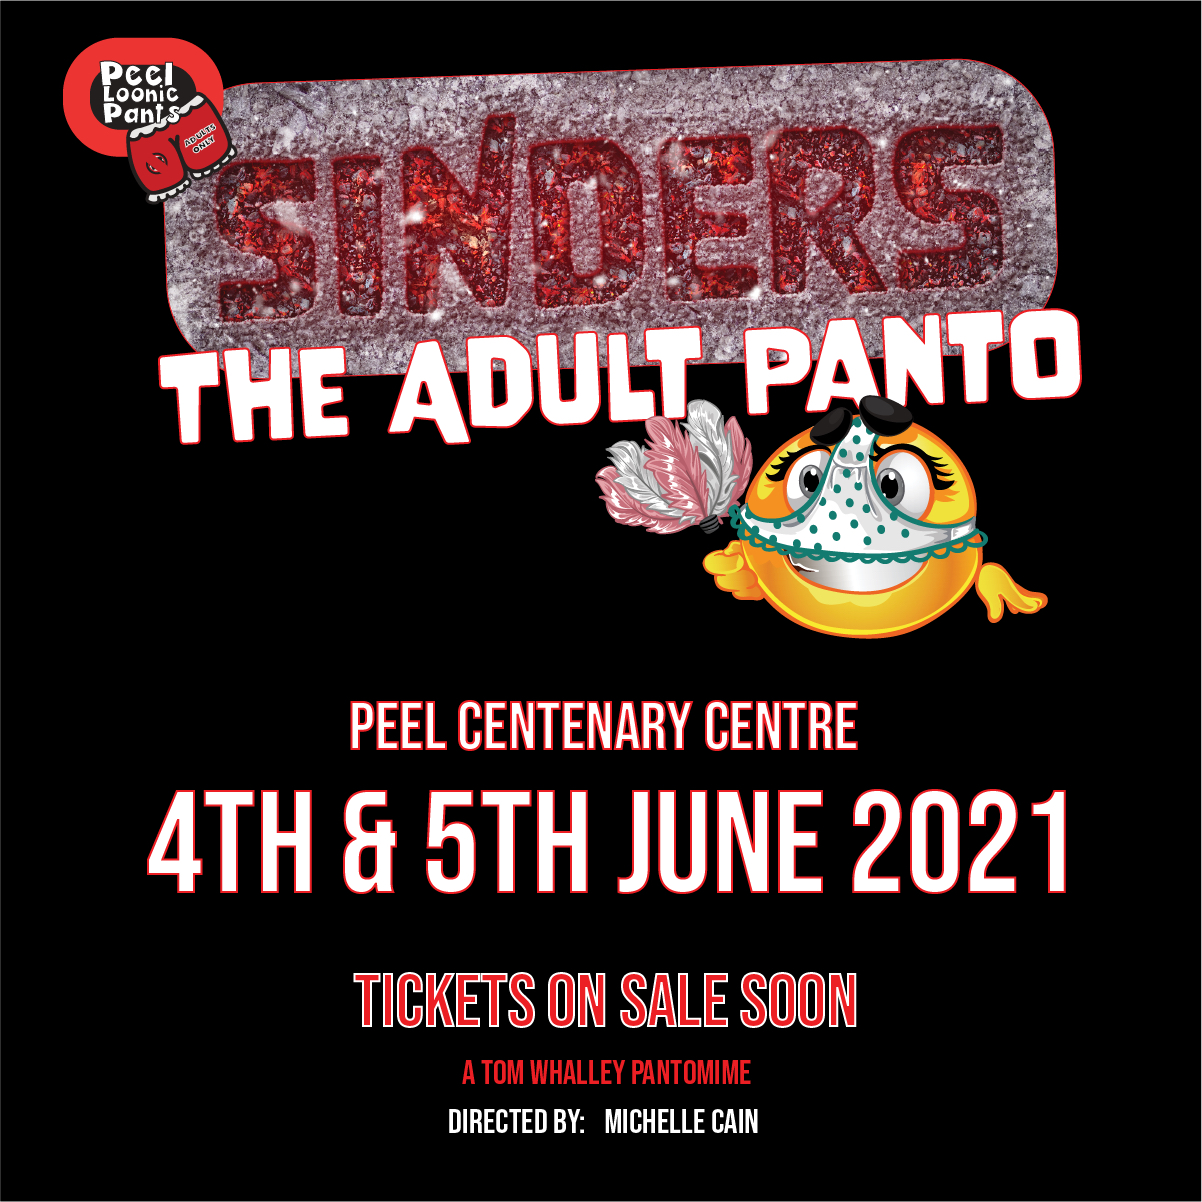 Sinders - Adults Only Panto (Strictly 18+) @ Peel Centenary Centre